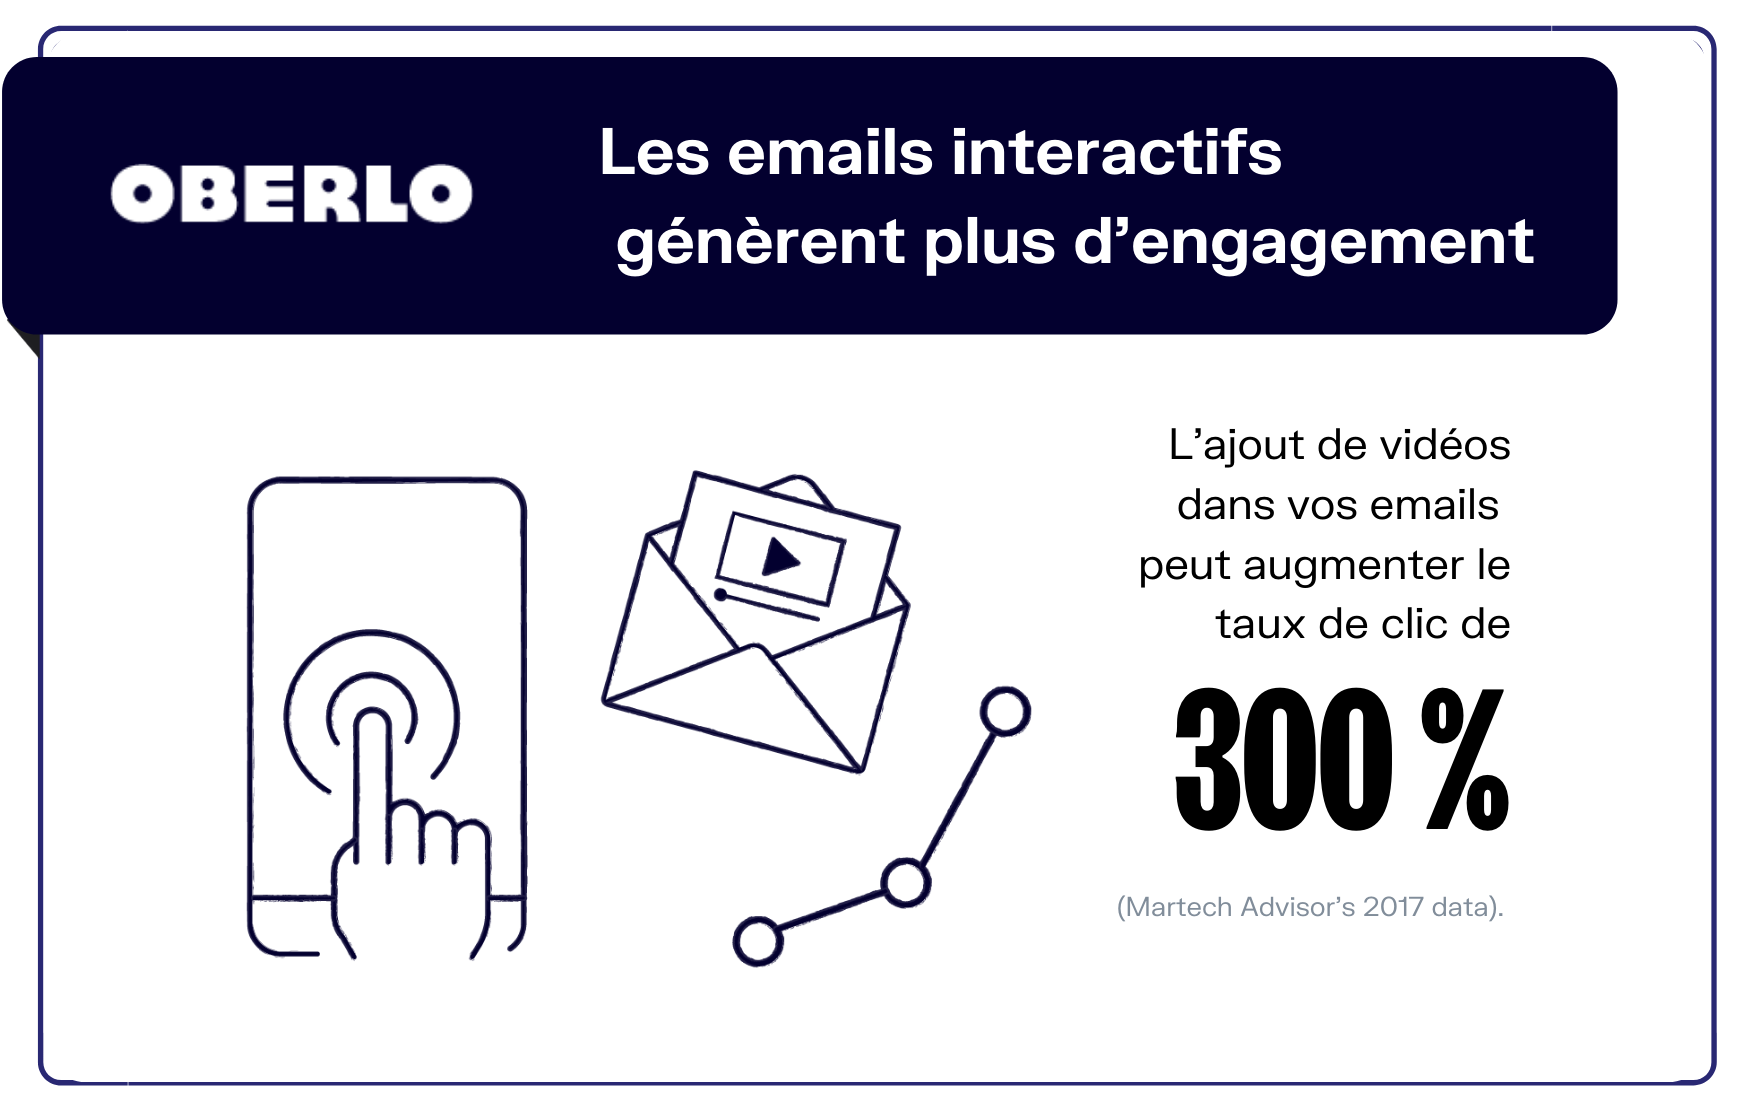 engagements emails interactifs